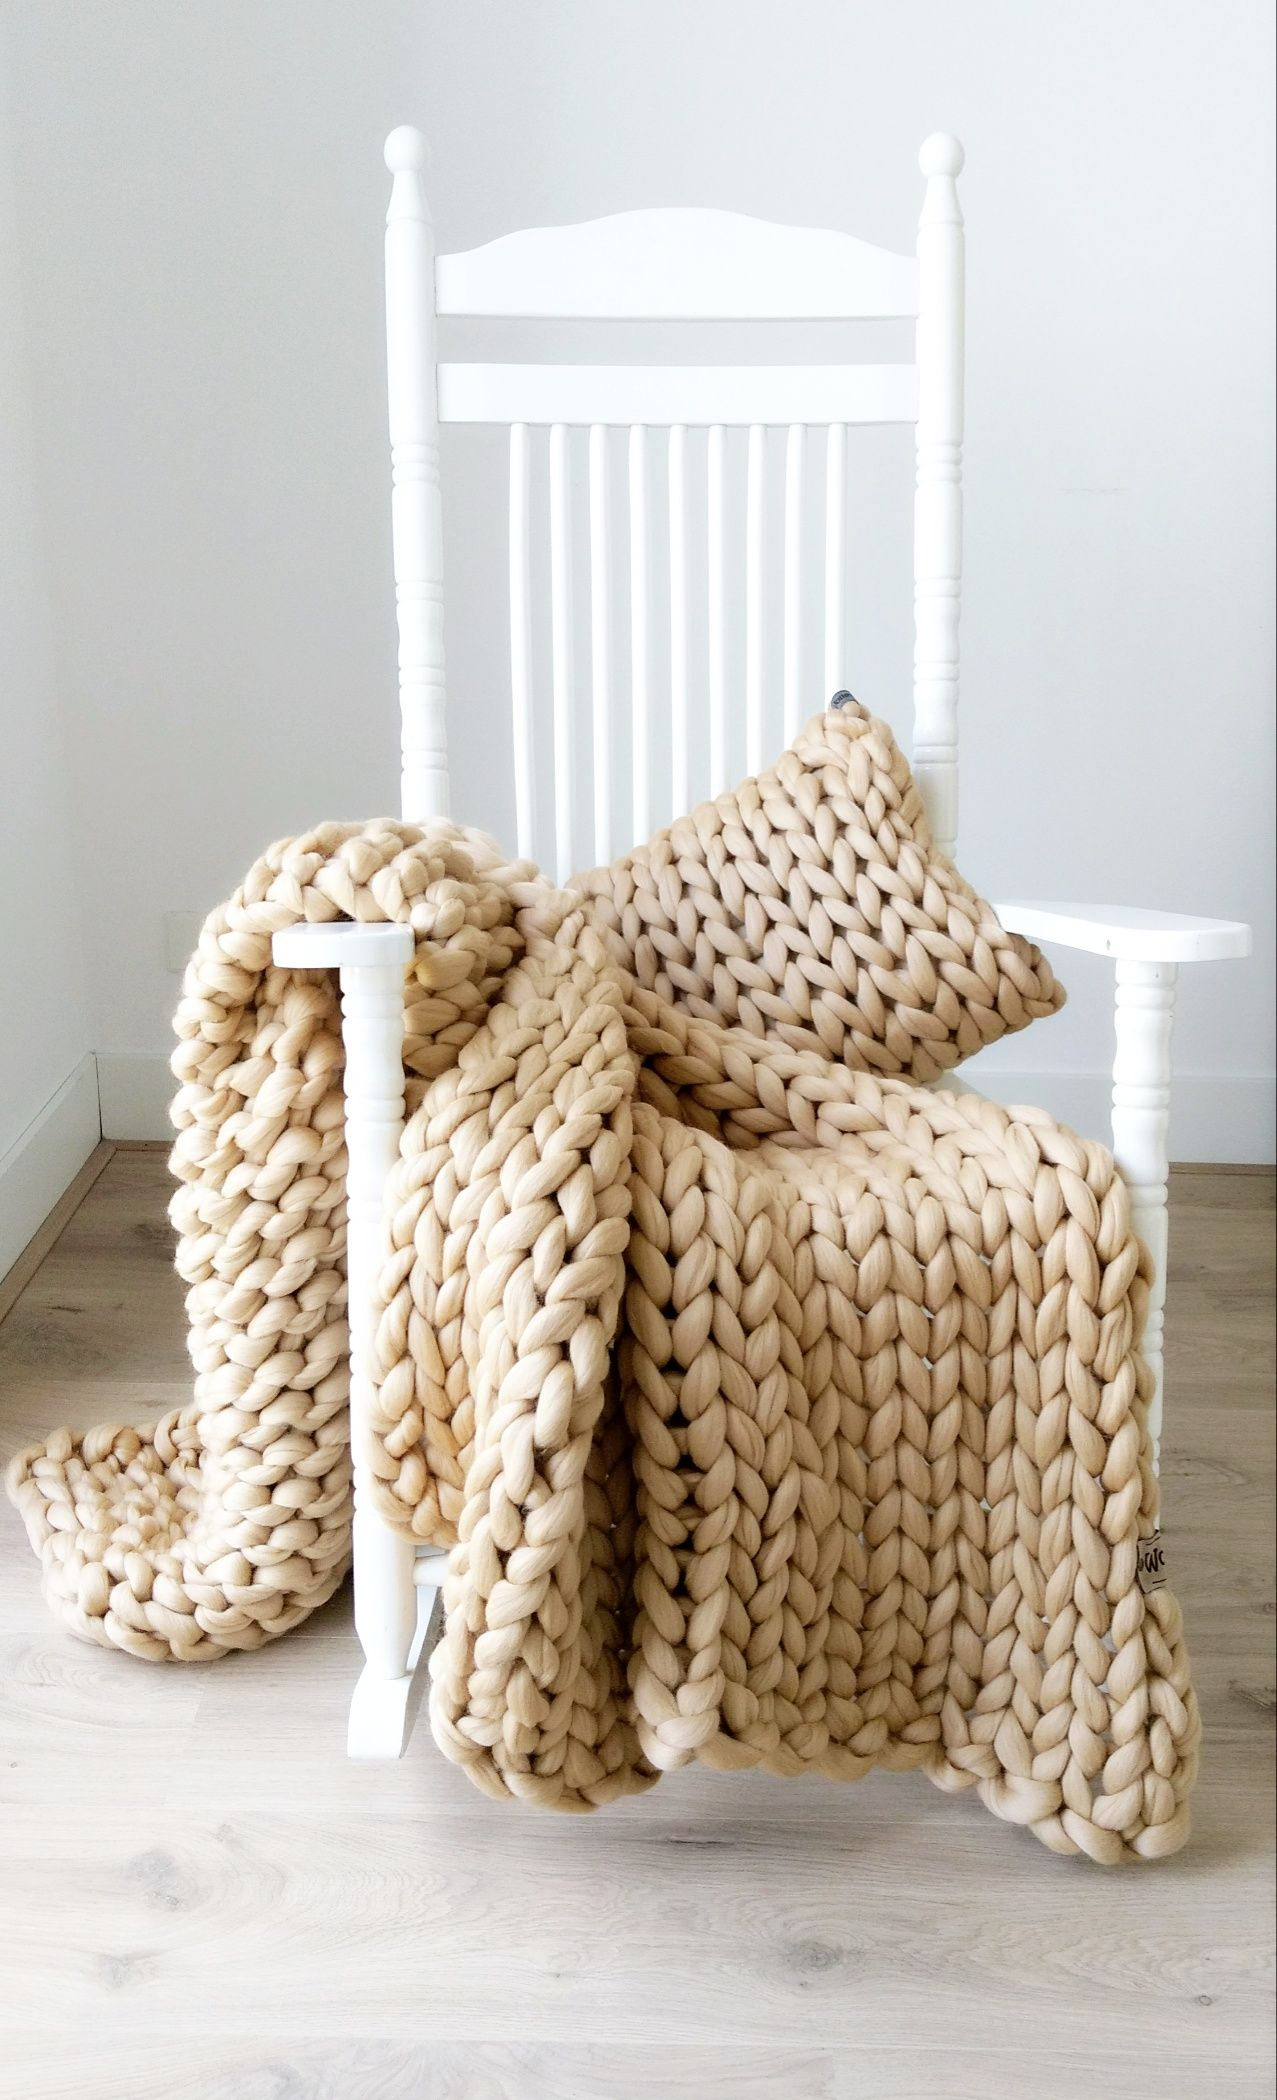 Grof Gebreid Plaid Patroon En Kleur Wol In 2019 Portfolio Throws Wool Chunky Knit